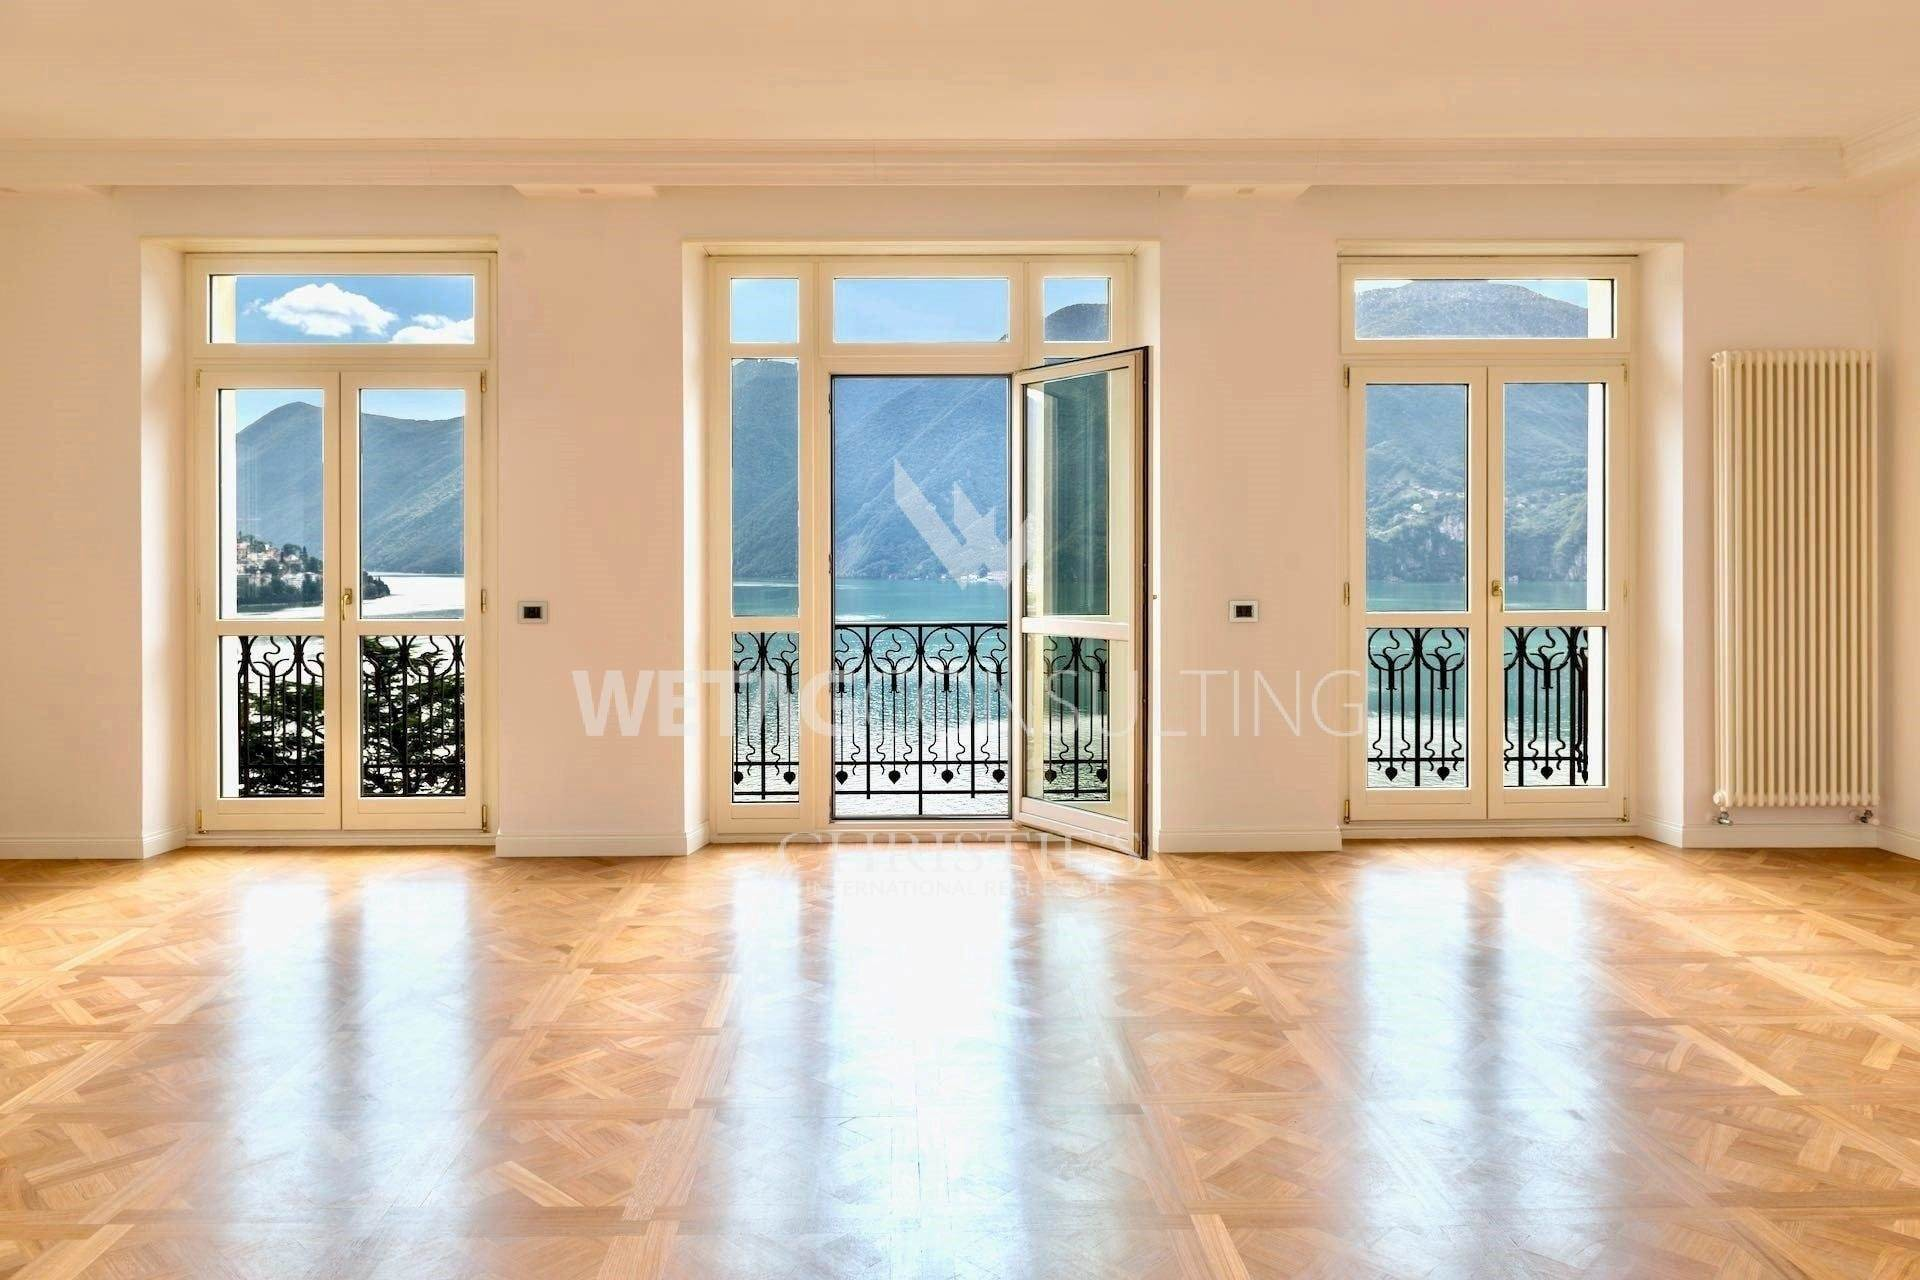 2. Apartamento por un Venta en Noble apartment house Bristol: duplex-penthouse for sale in the heart of Lugano Lugano, Tesino,6900 Suiza